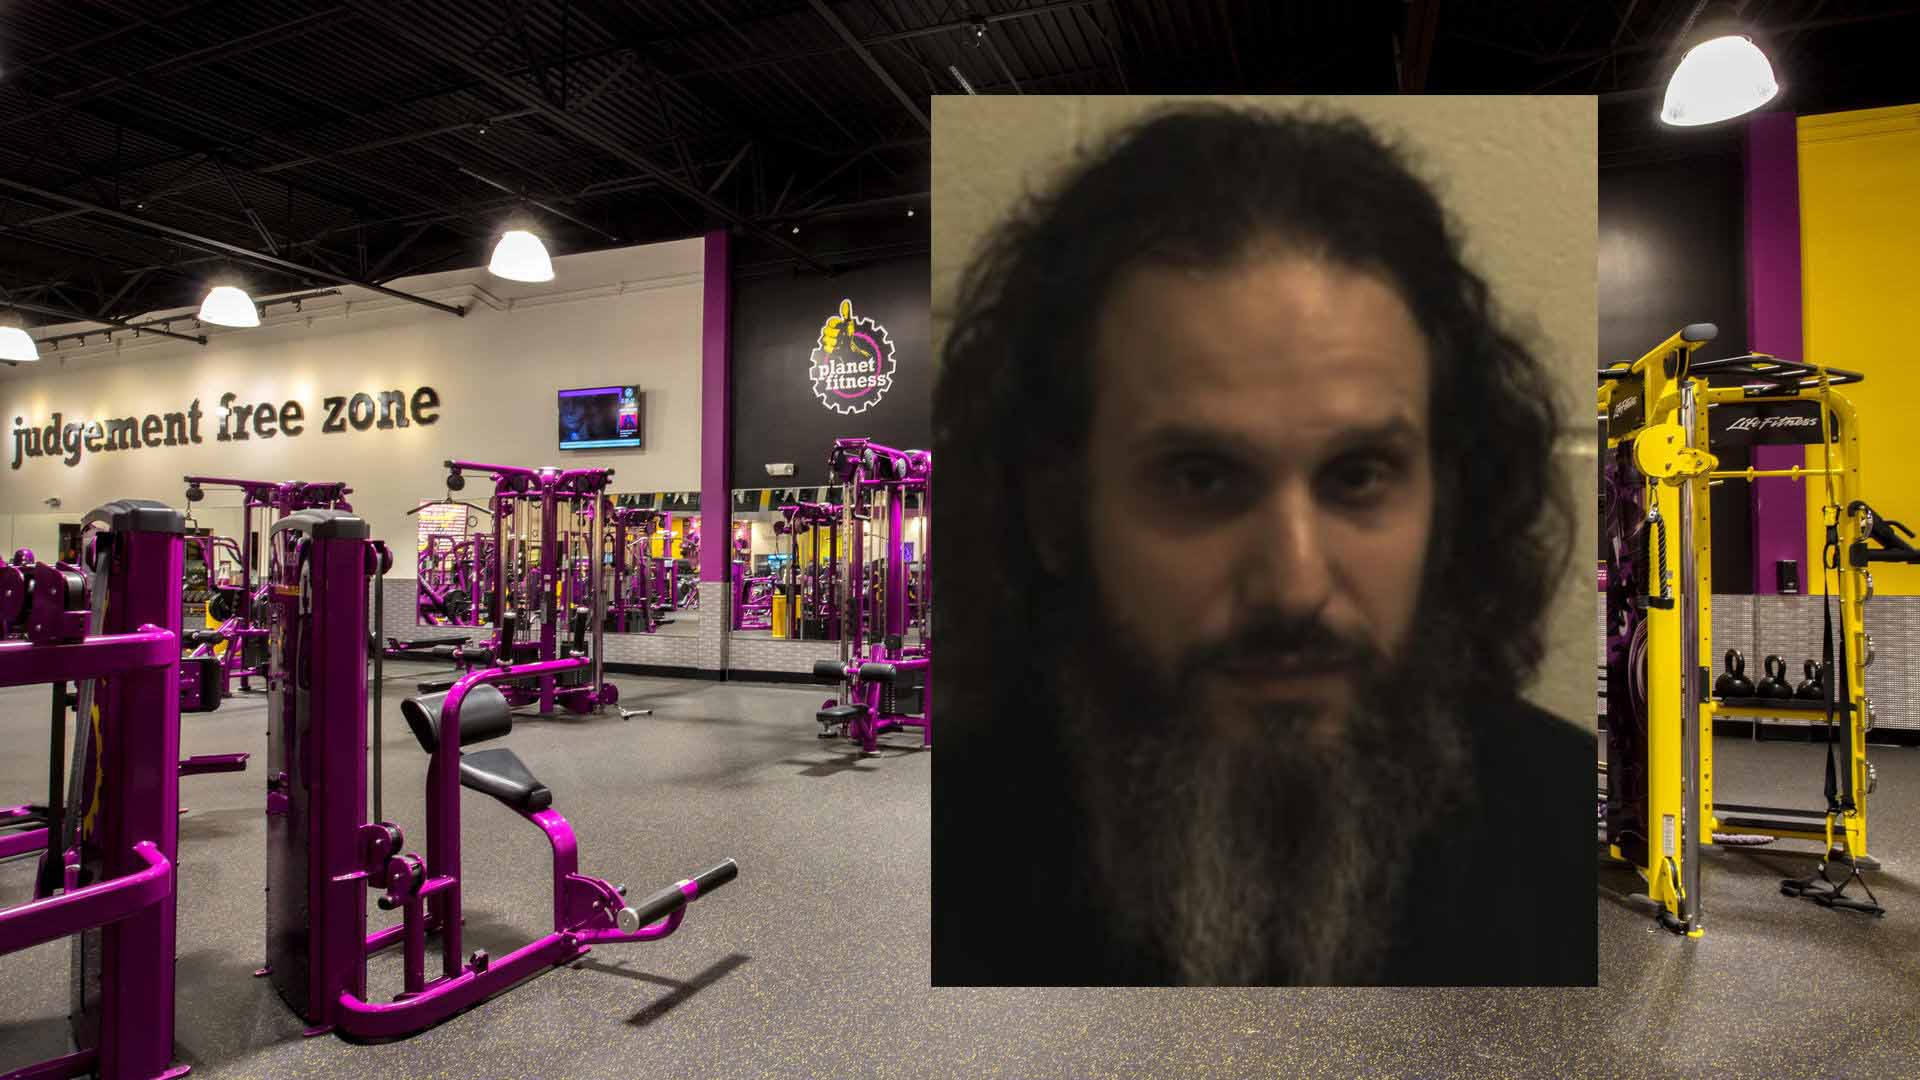 Man Arrested For Nude Yoga At Planet Fitness Says I